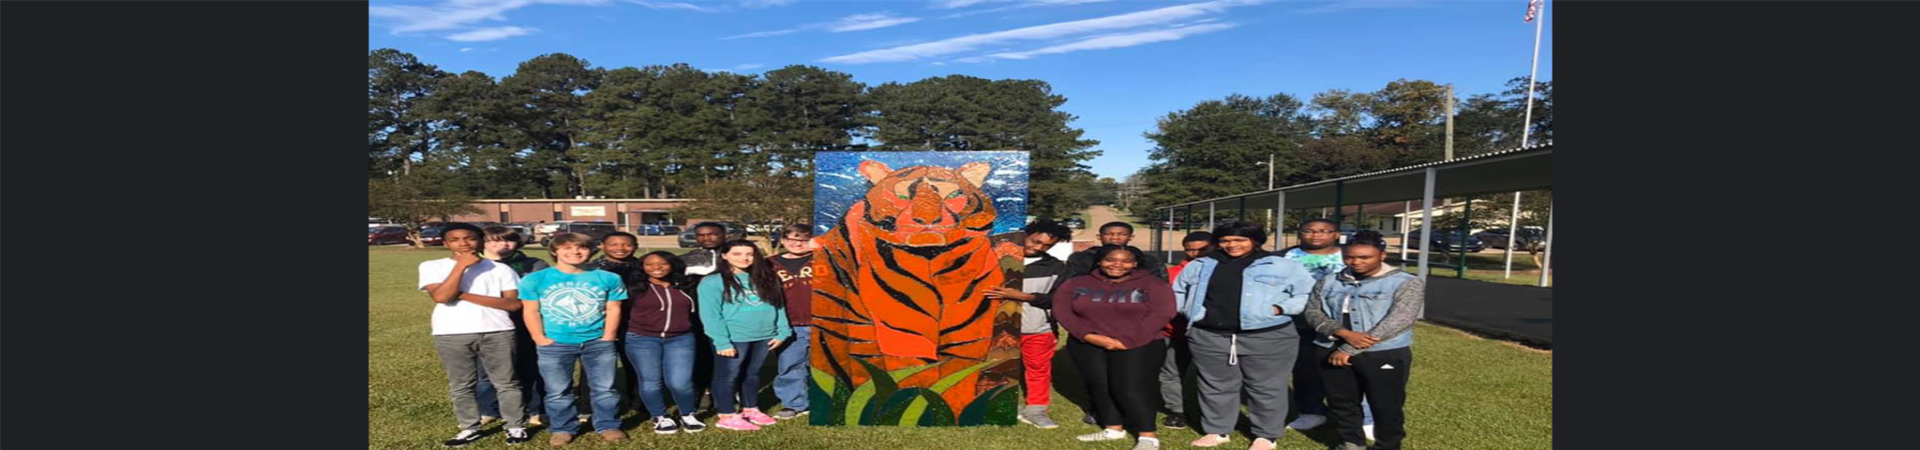 Mrs. Moye's 1st and 2nd Block Art Classes Art Project 2019